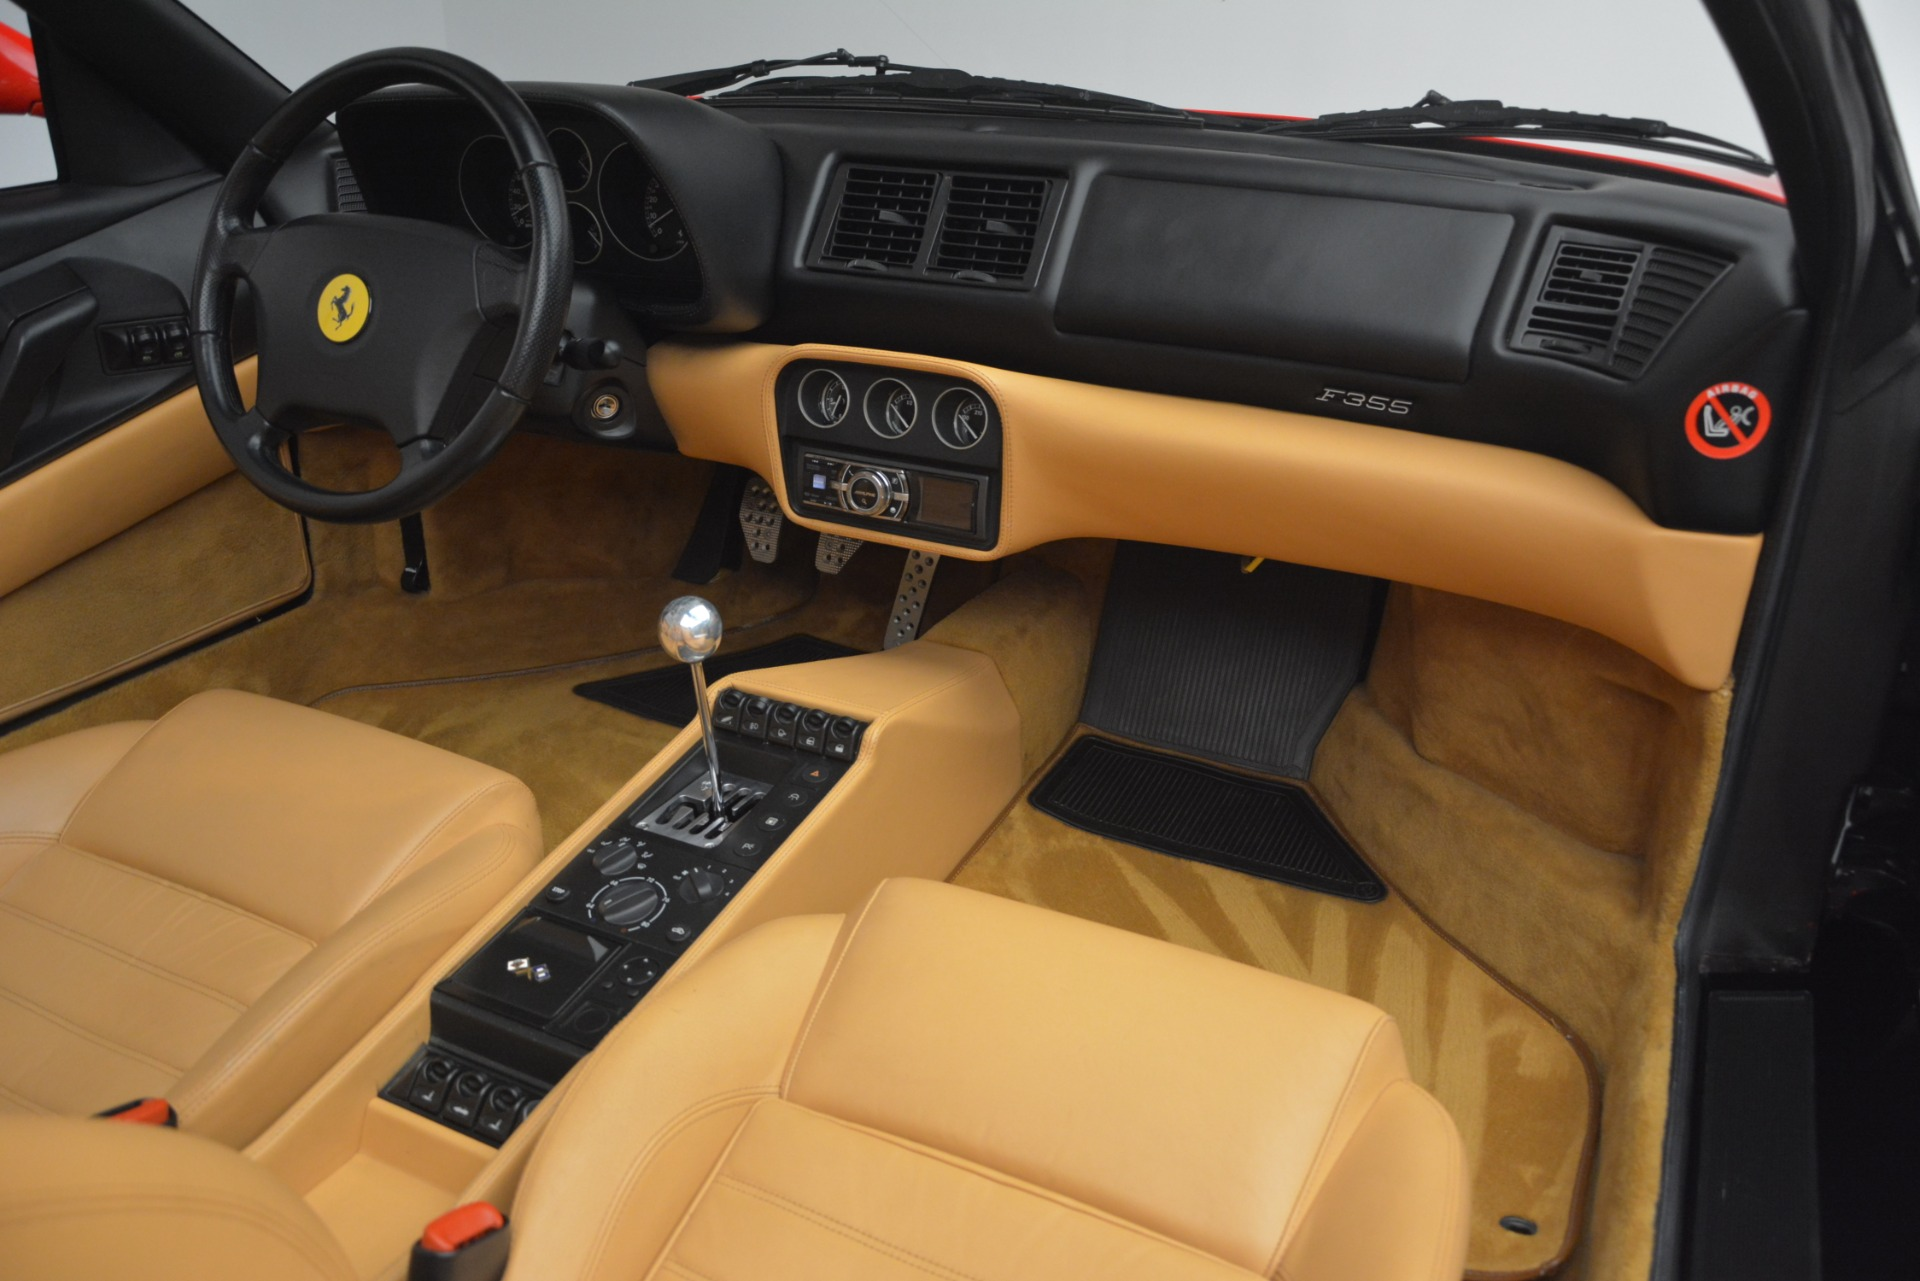 Used 1997 Ferrari 355 Spider 6-Speed Manual For Sale In Greenwich, CT 2735_p32